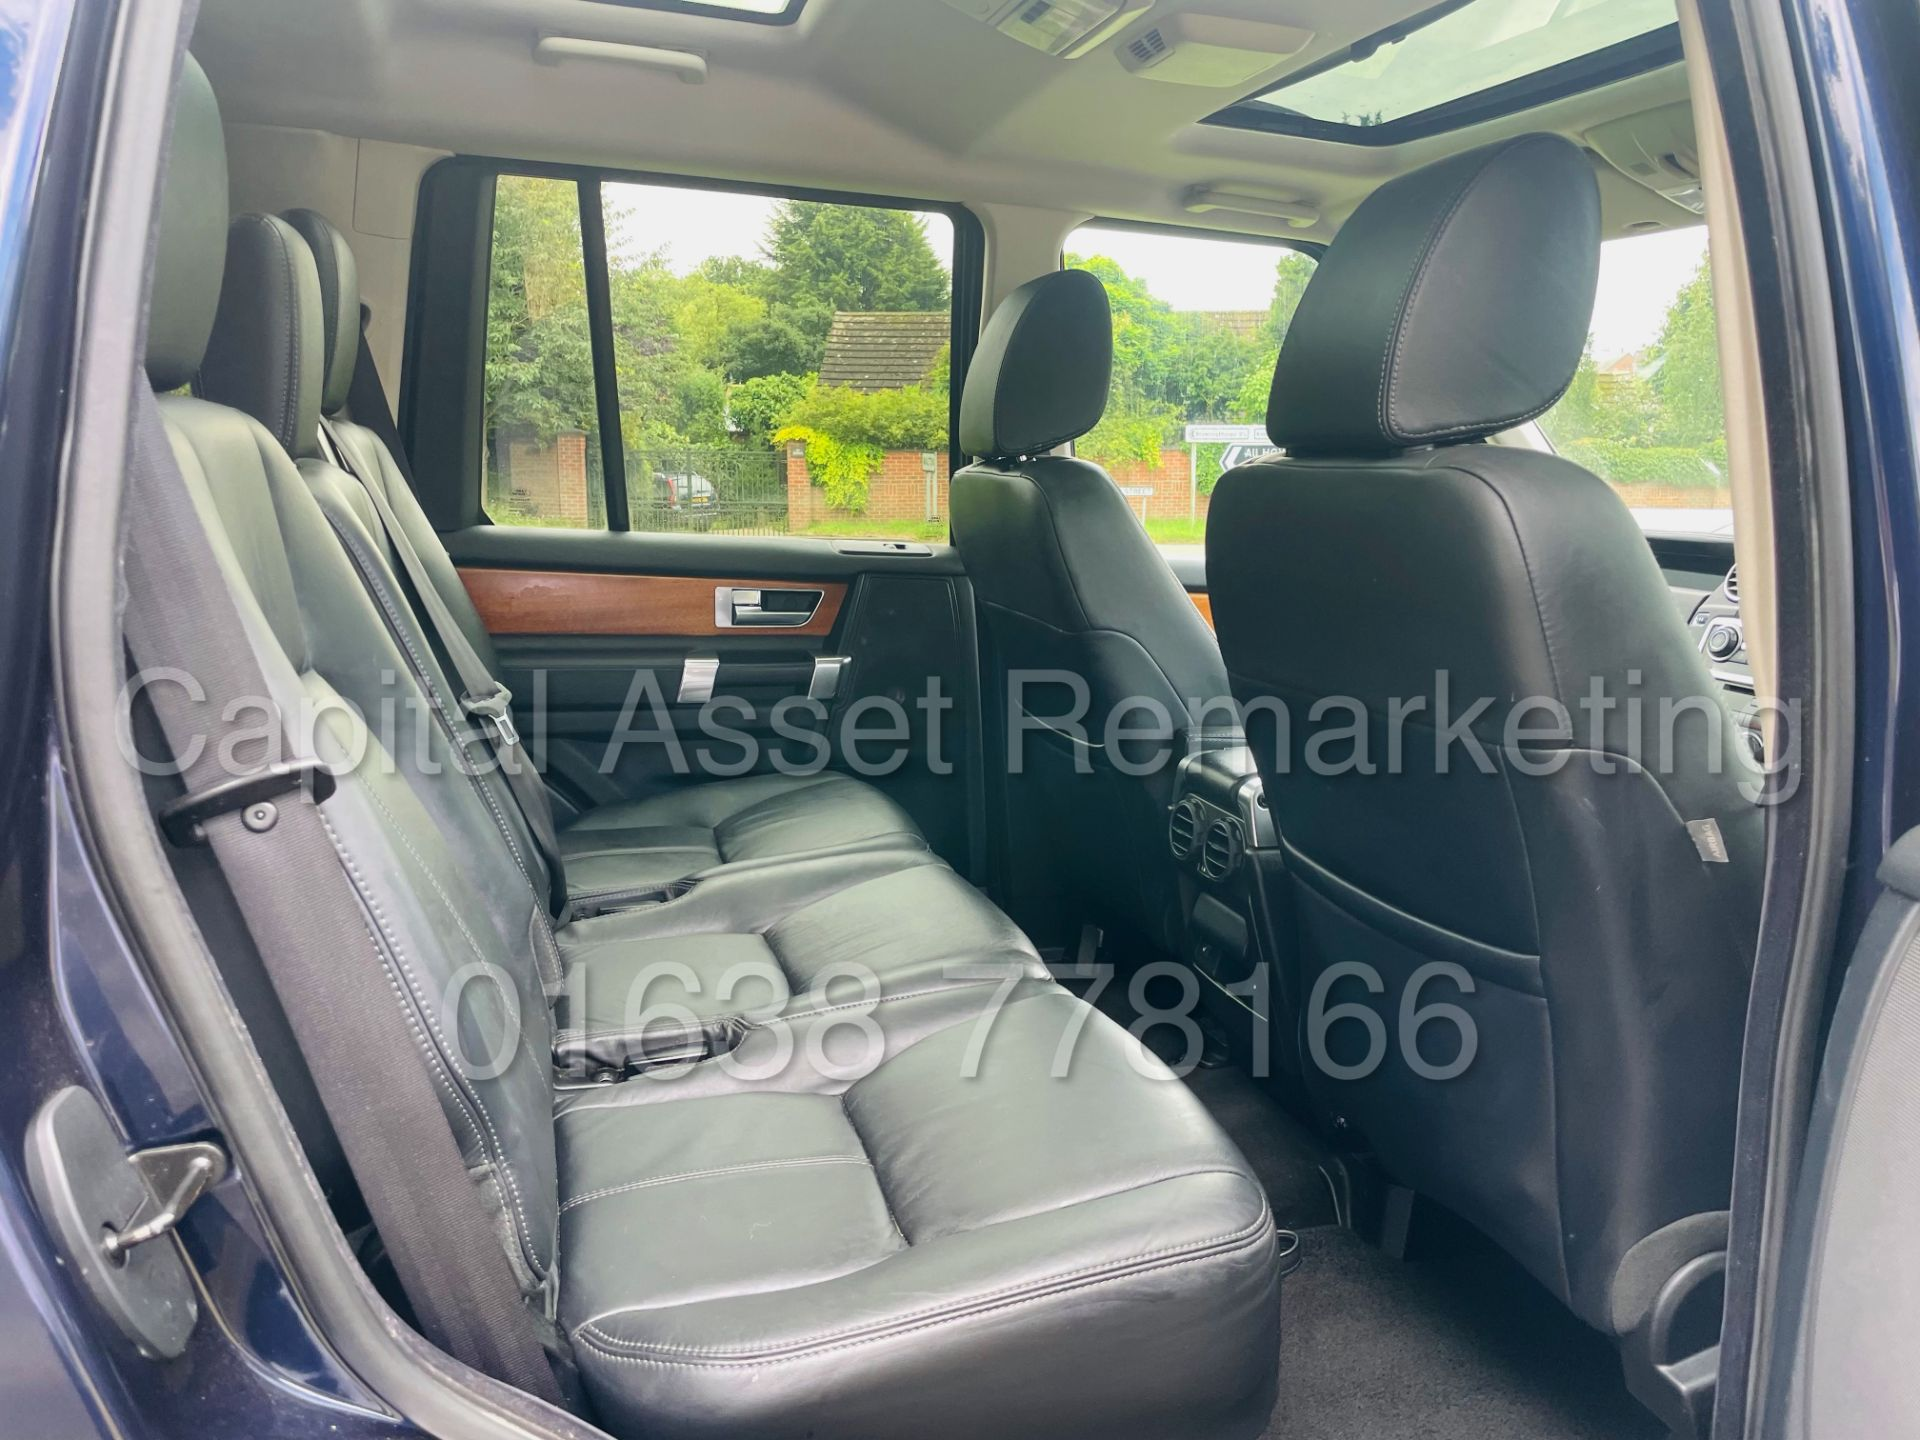 LAND ROVER DISCOVERY 4 *HSE* 7 SEATER SUV (2014 - NEW MODEL) '3.0 SDV6 - 255 BHP - 8 SPEED AUTO' - Image 34 of 61